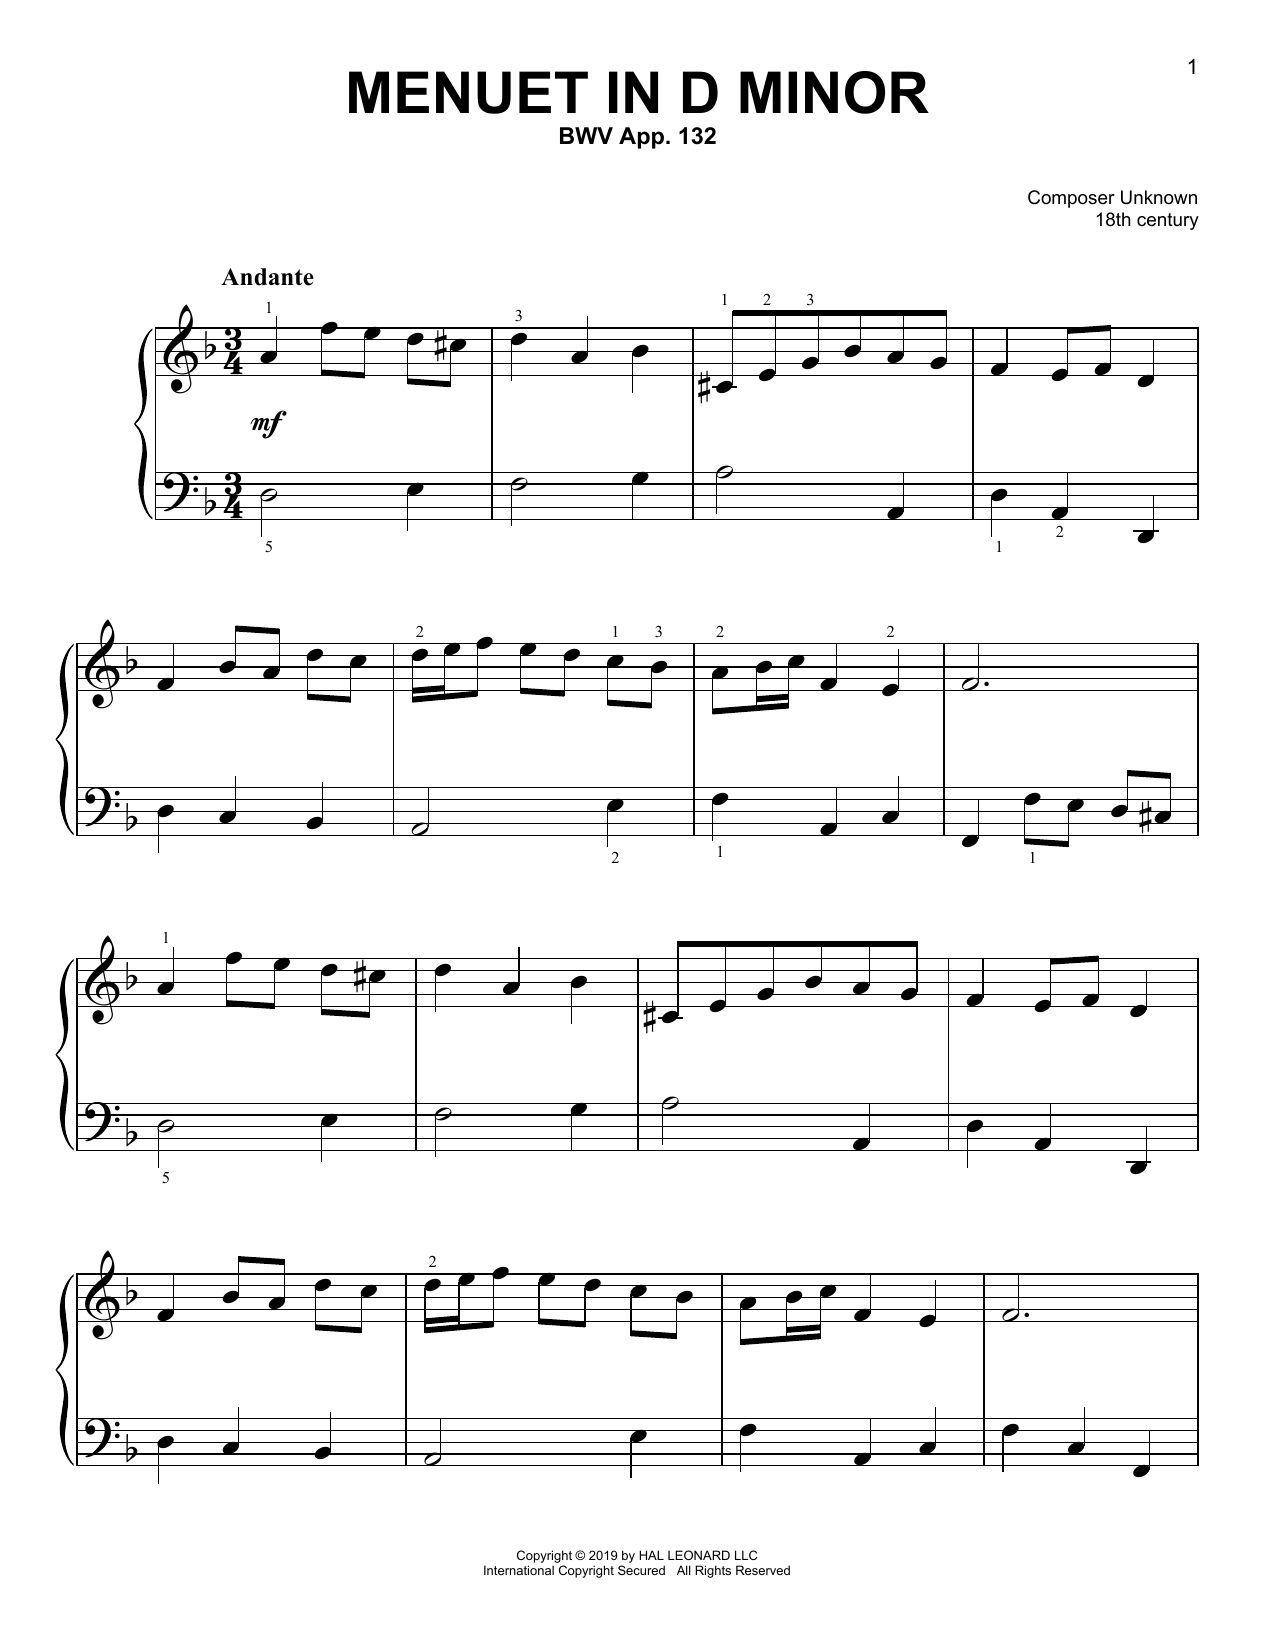 Christos Tsitsaros Menuet In D Minor, BWV App. 132 sheet music notes and chords. Download Printable PDF.